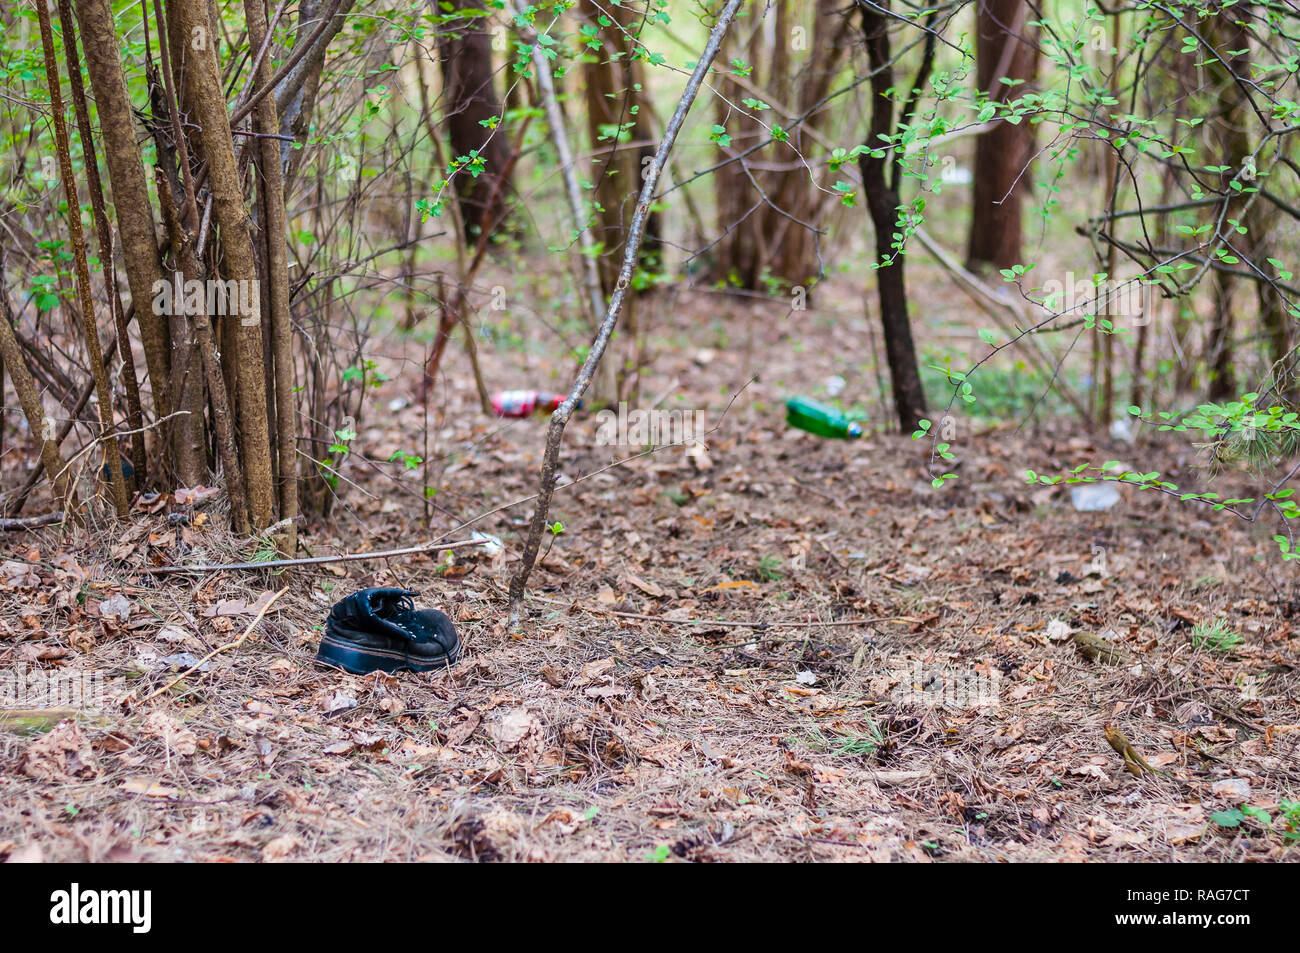 Thrown out boot together with empty alcohol bottles and other trash in the forest - Stock Image